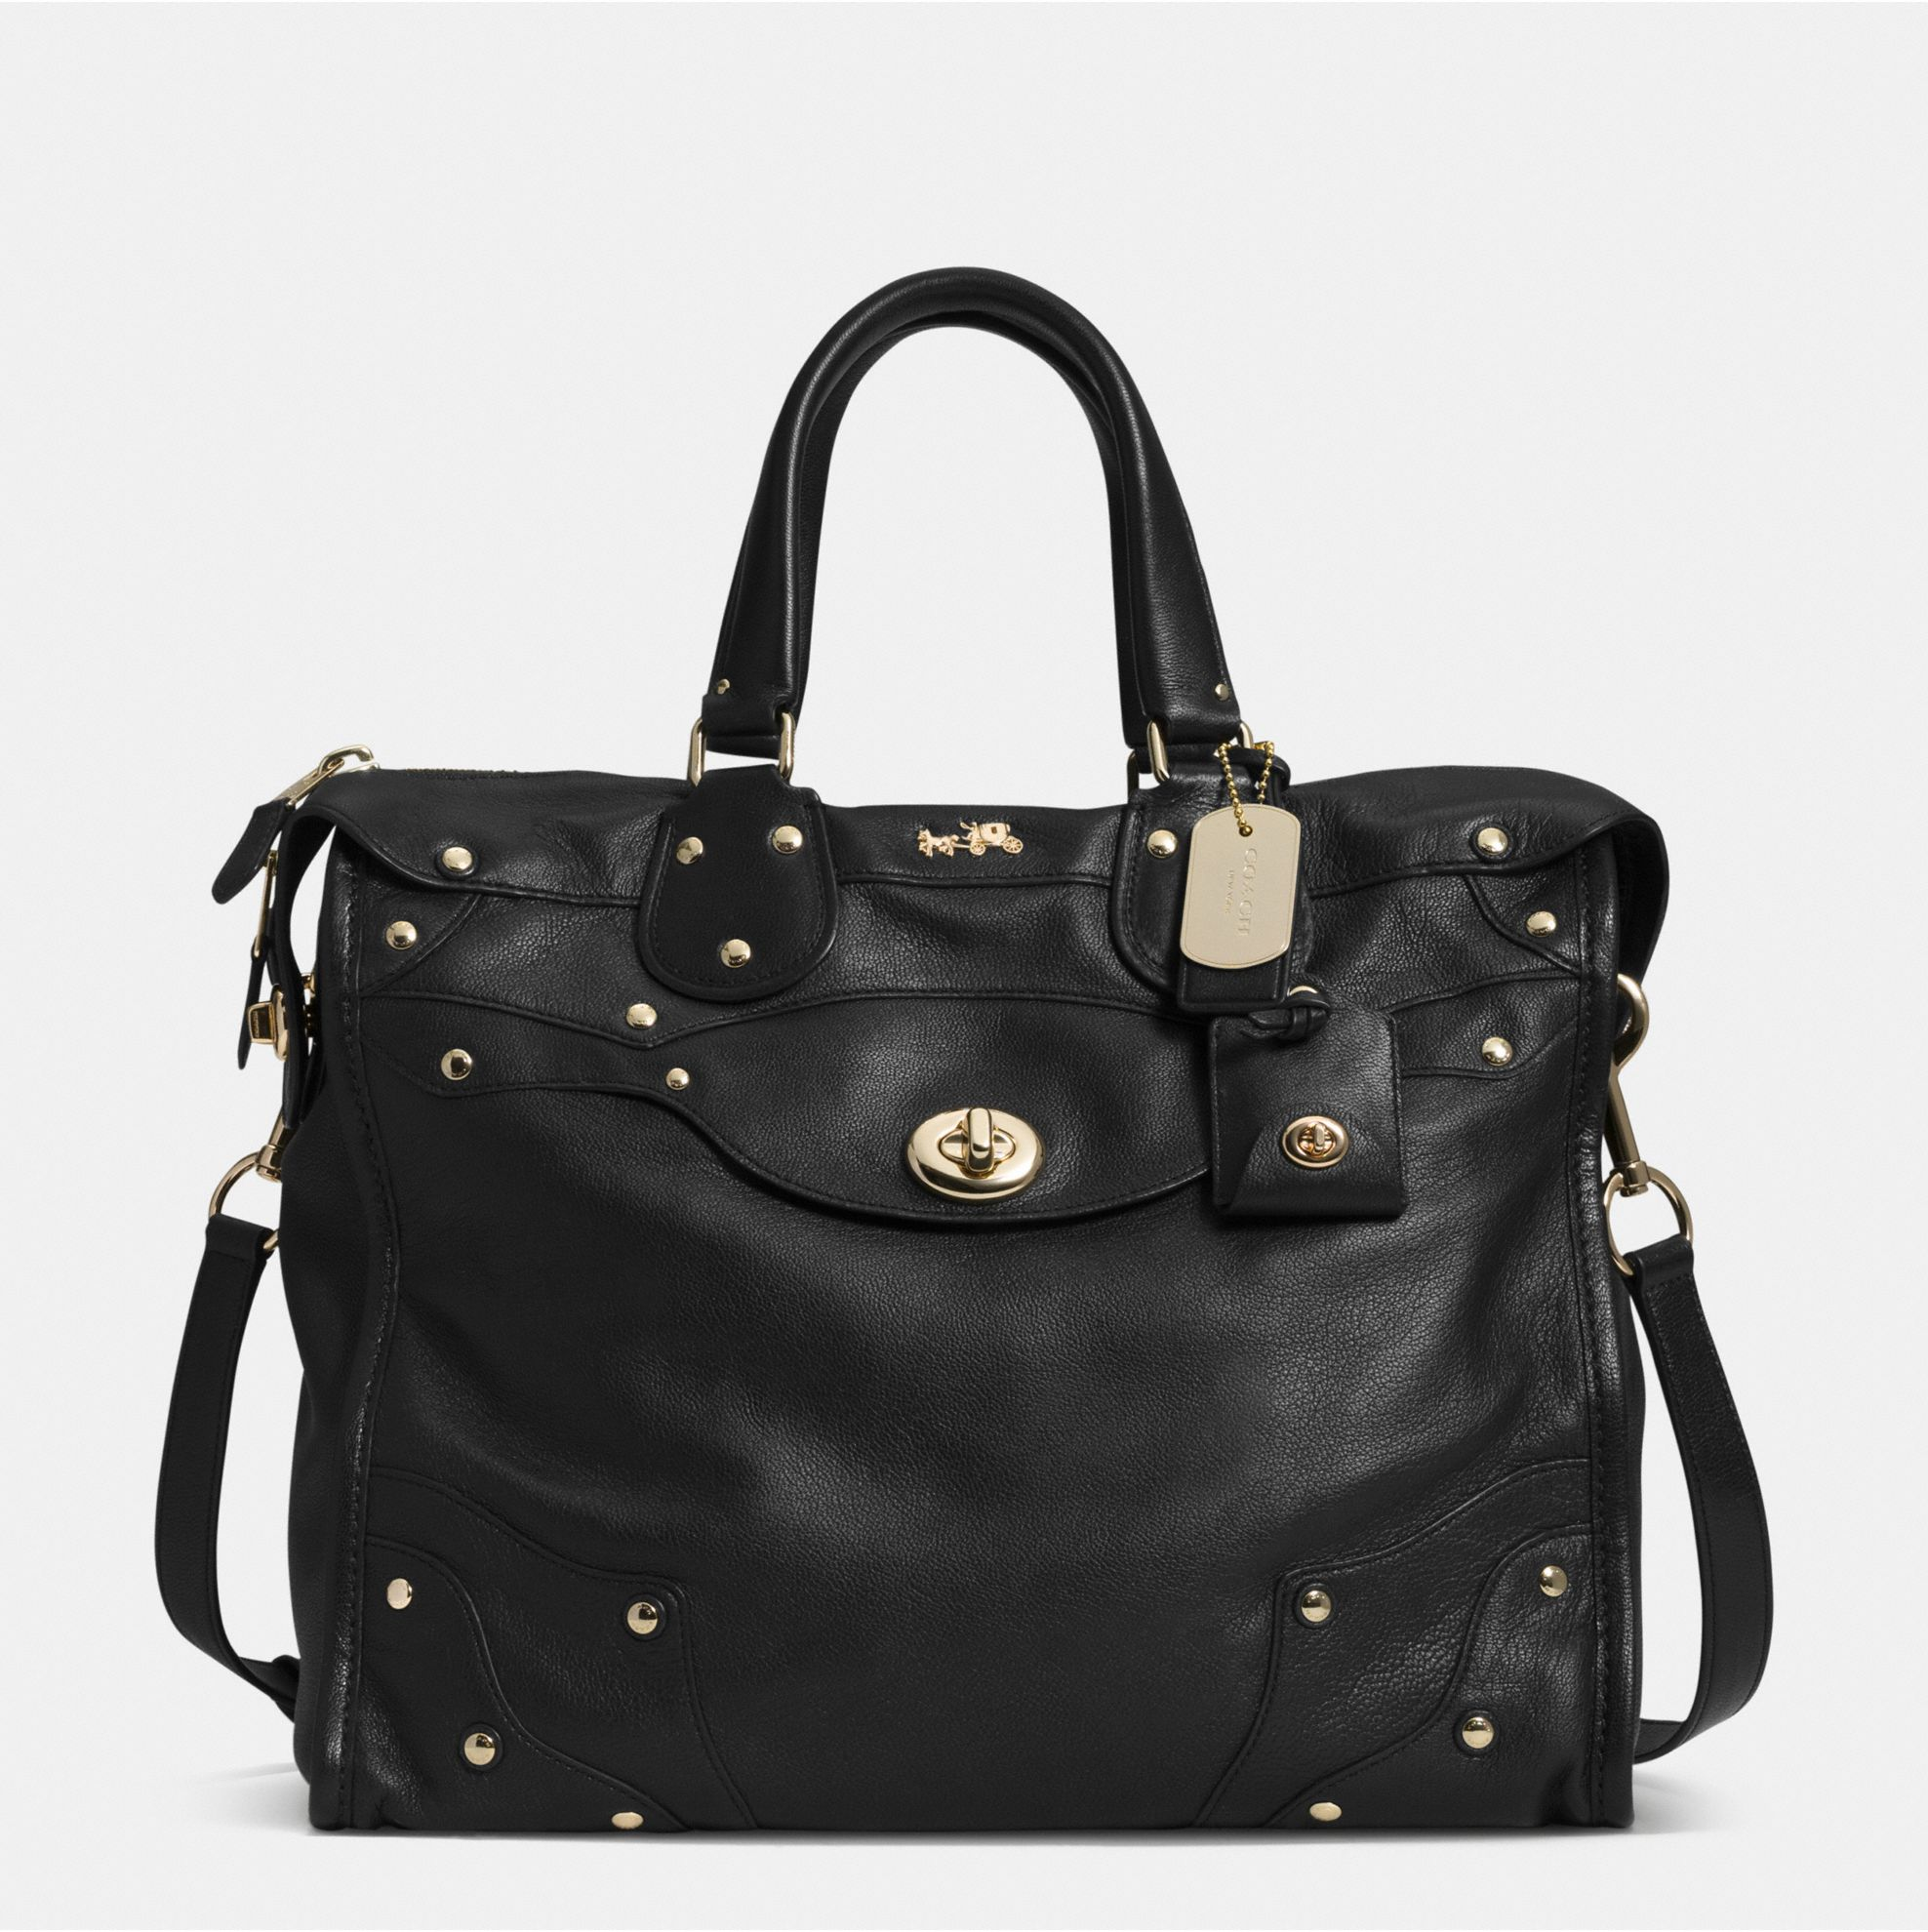 Coach Rhyder 33 Satchel in Soft Grain Leather | Fancy Friday – Coach Fall 2014 Collection